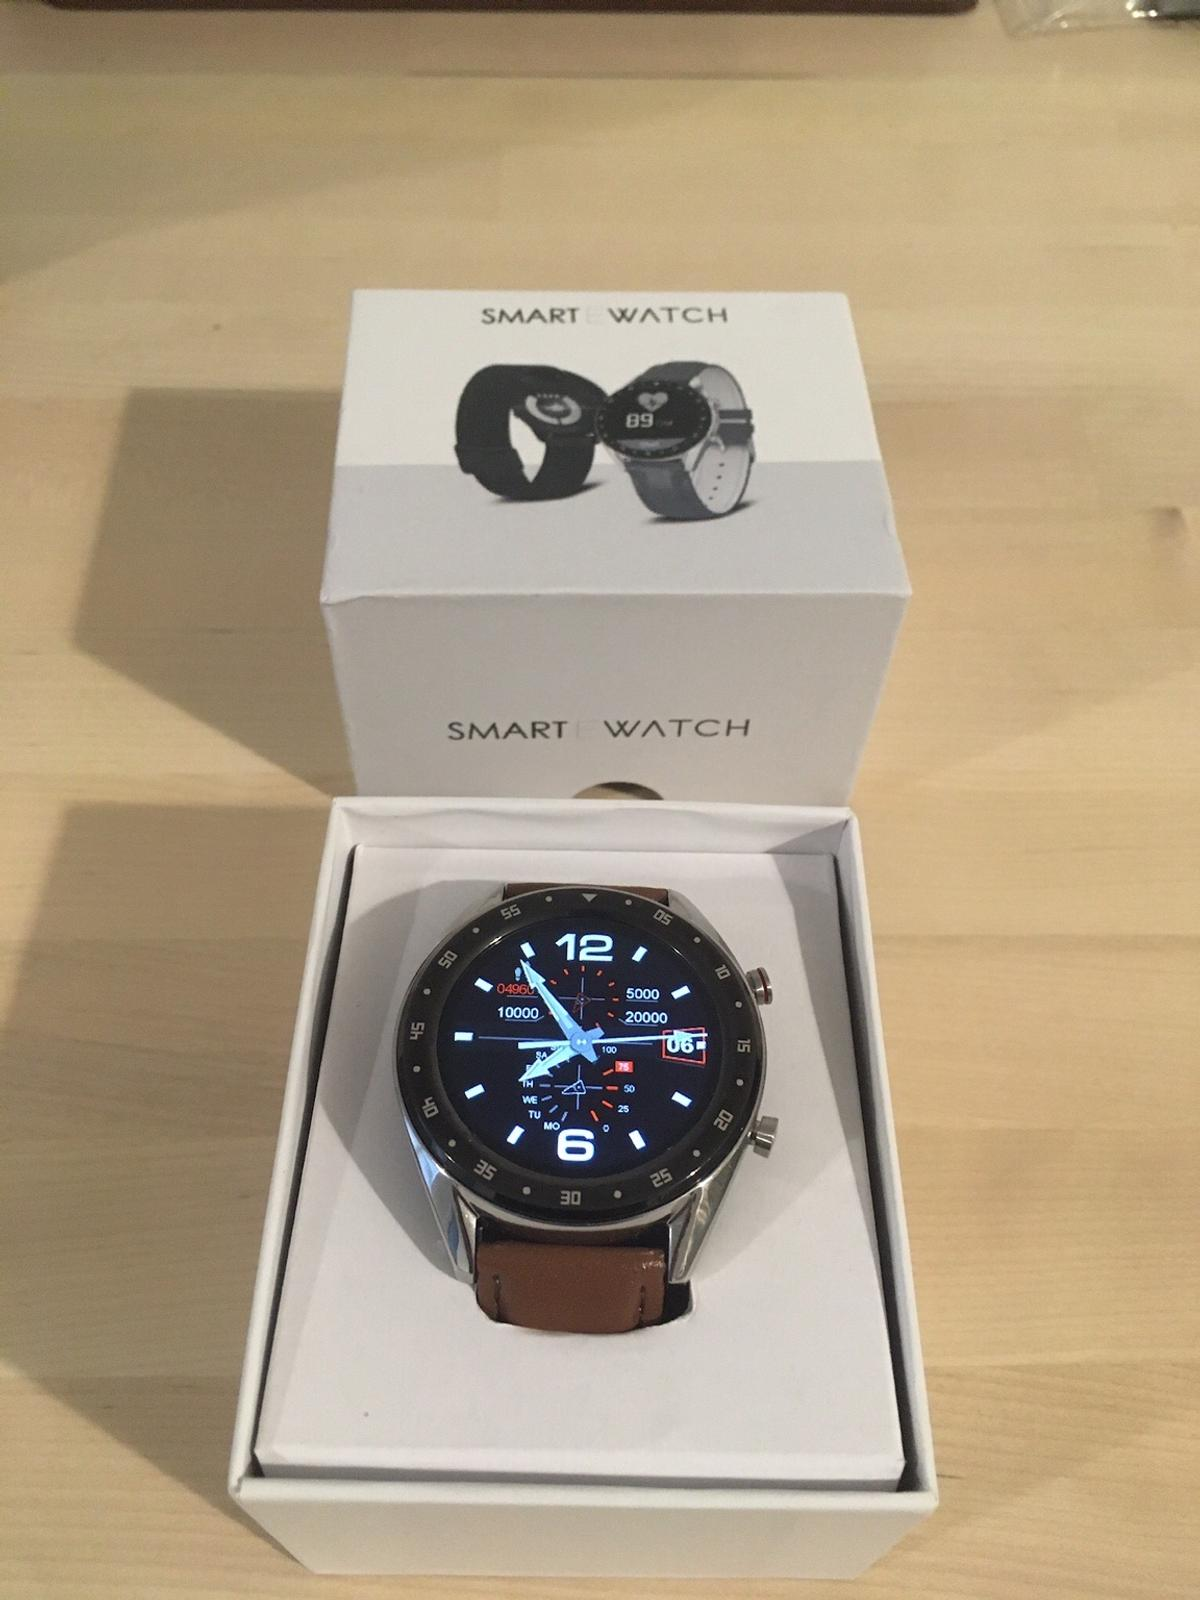 G7 TocWatch. Bought just a couple of weeks ago for £89, only worn a few times. Complete with box and charger, plastic cover still on watch face.